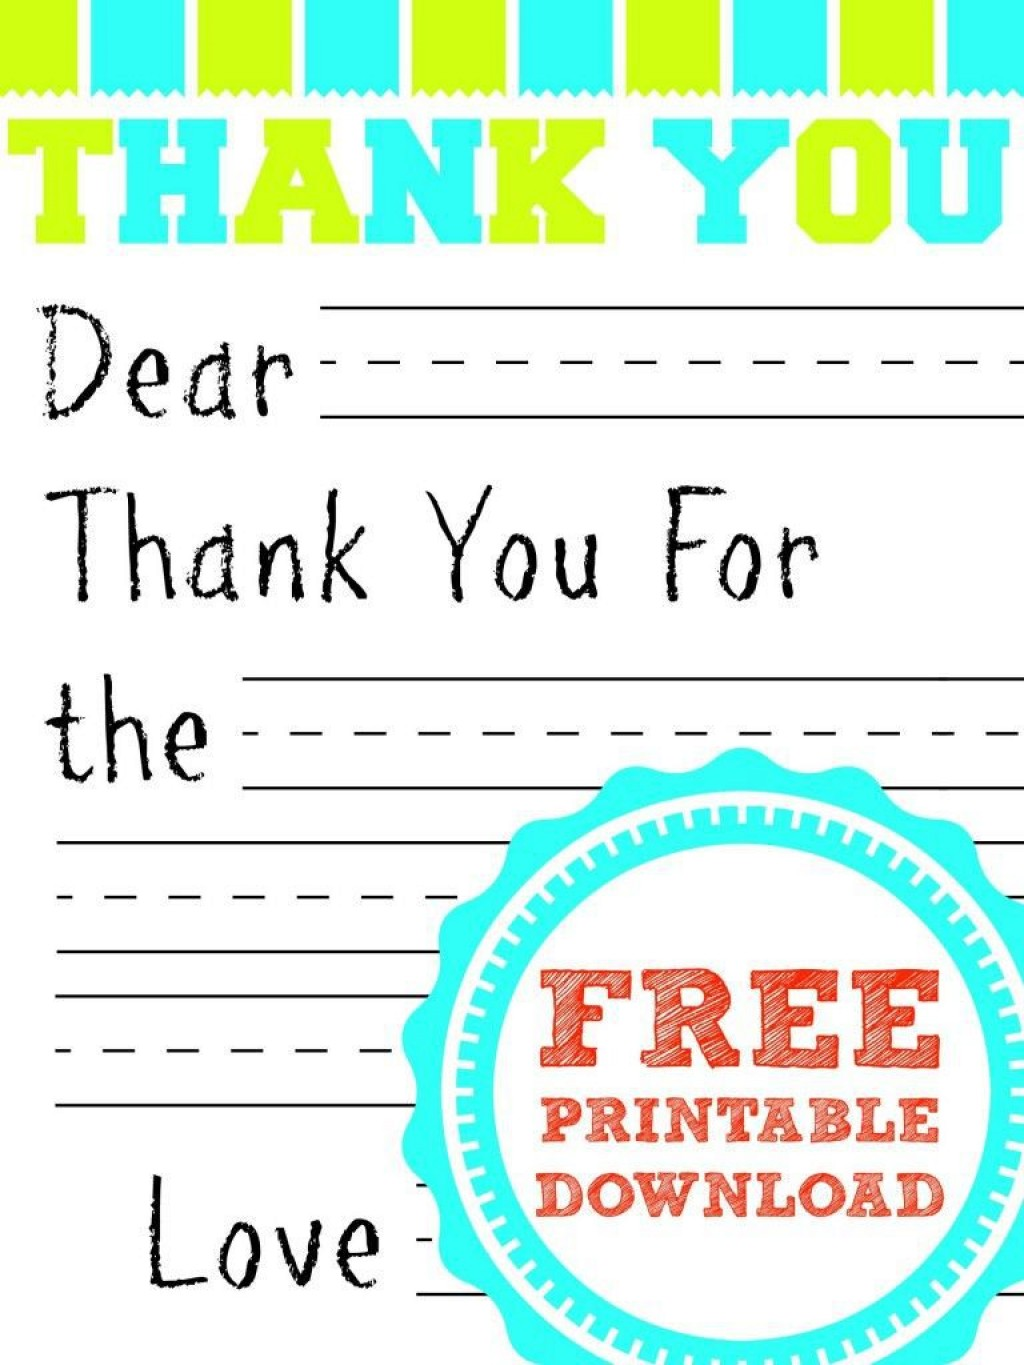 004 Outstanding Free Thank You Note Template Word Image  Card DownloadLarge